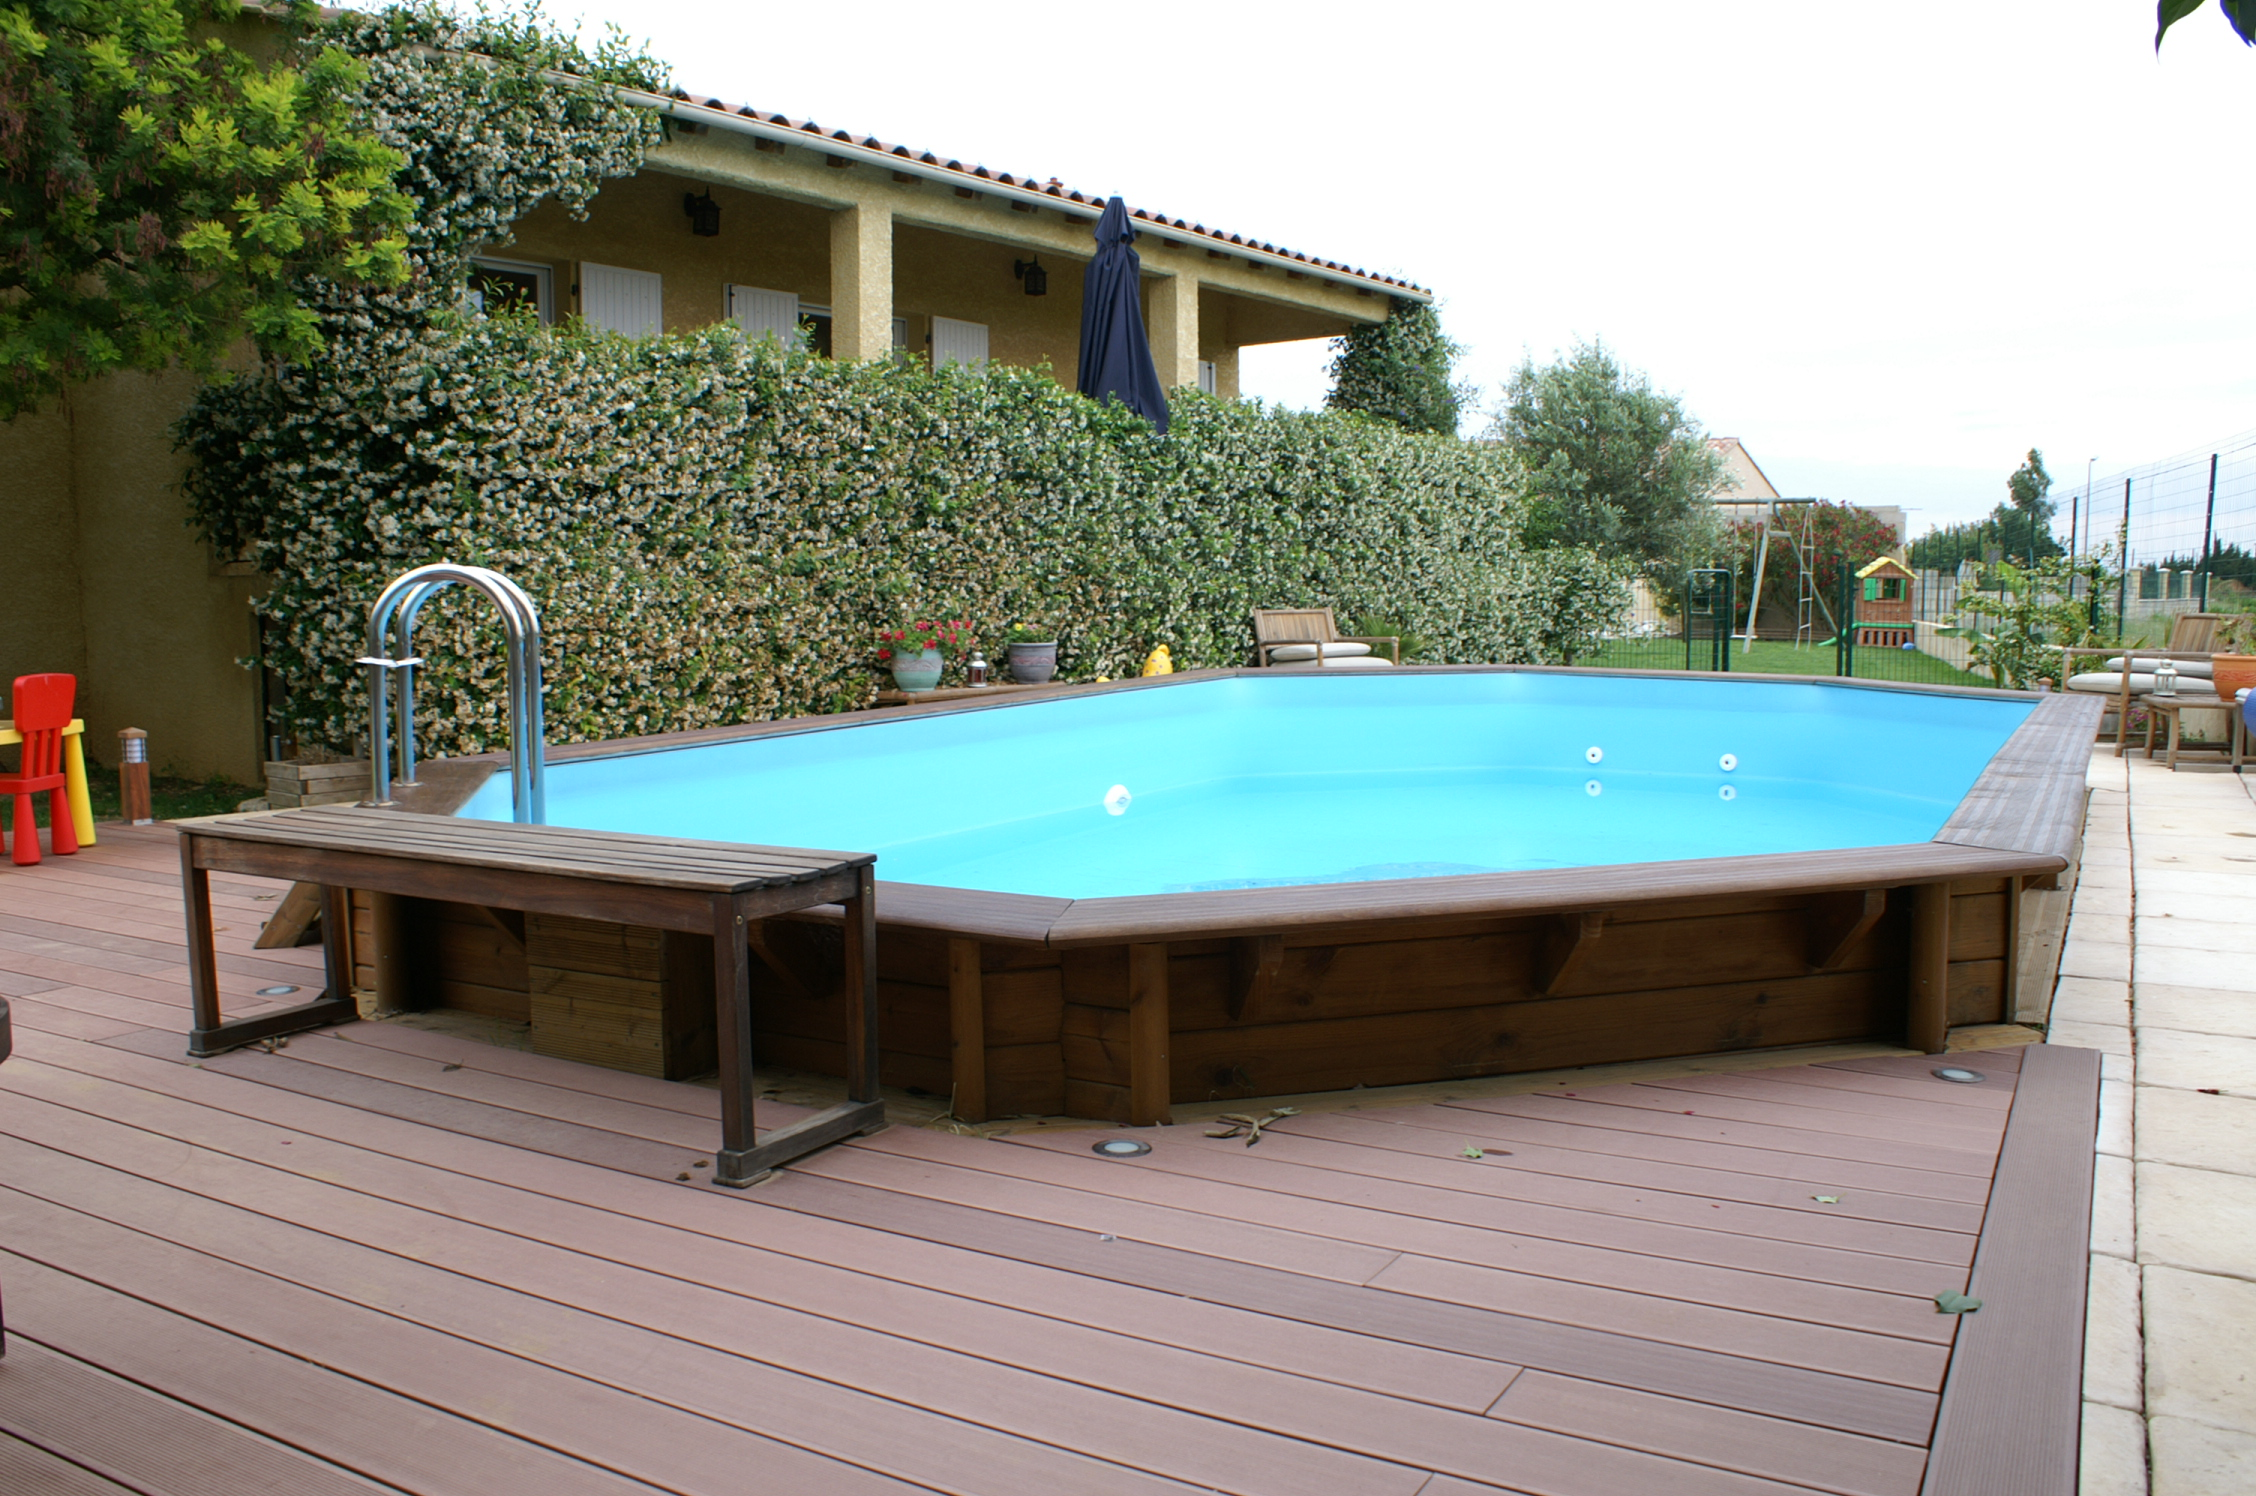 Construction piscines nimes gepad piscines et spa 30000 n mes Amenagement piscine hors sol